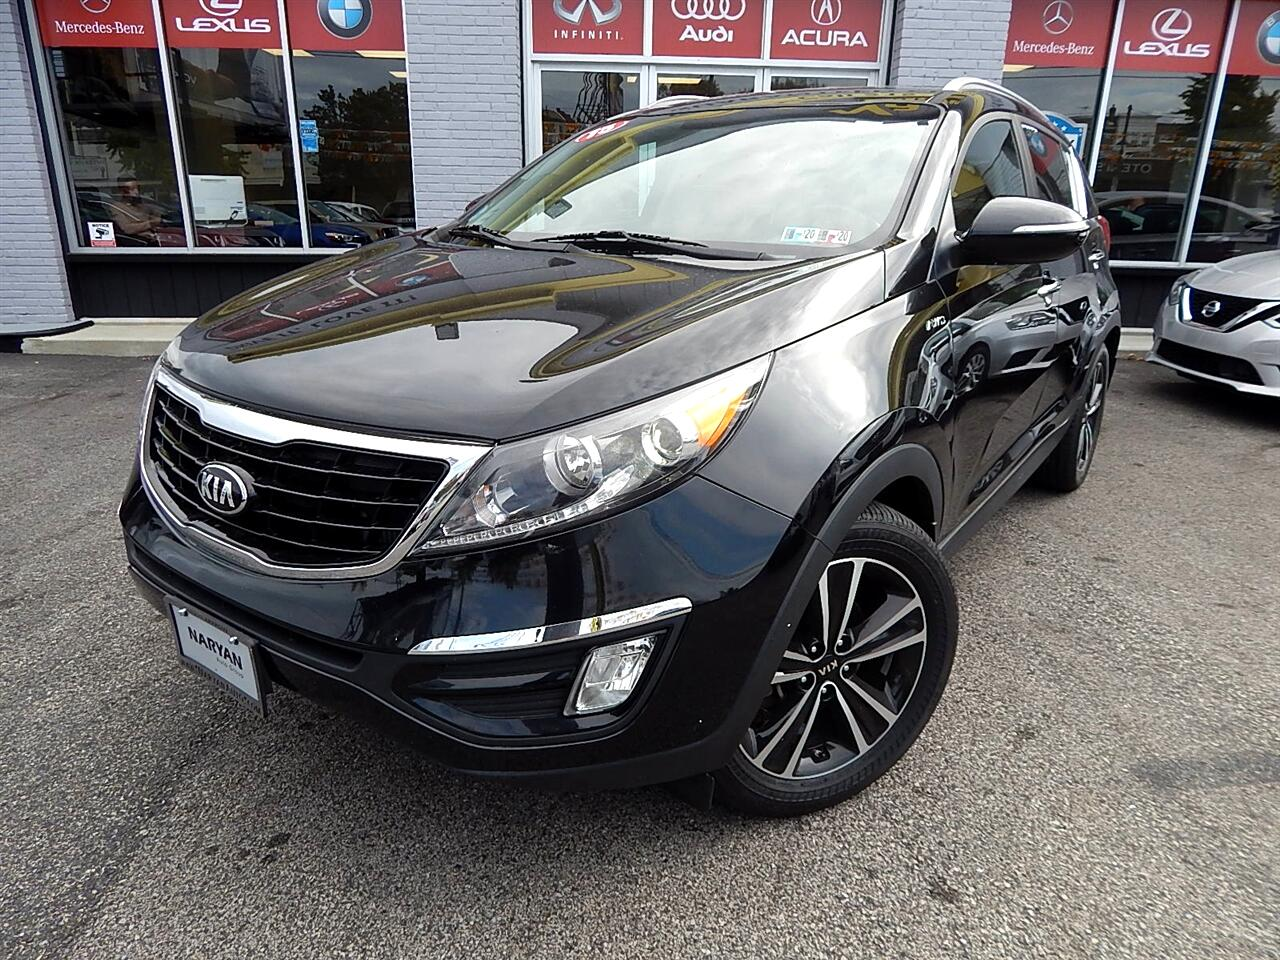 2015 Kia Sportage SX AWD Turbo